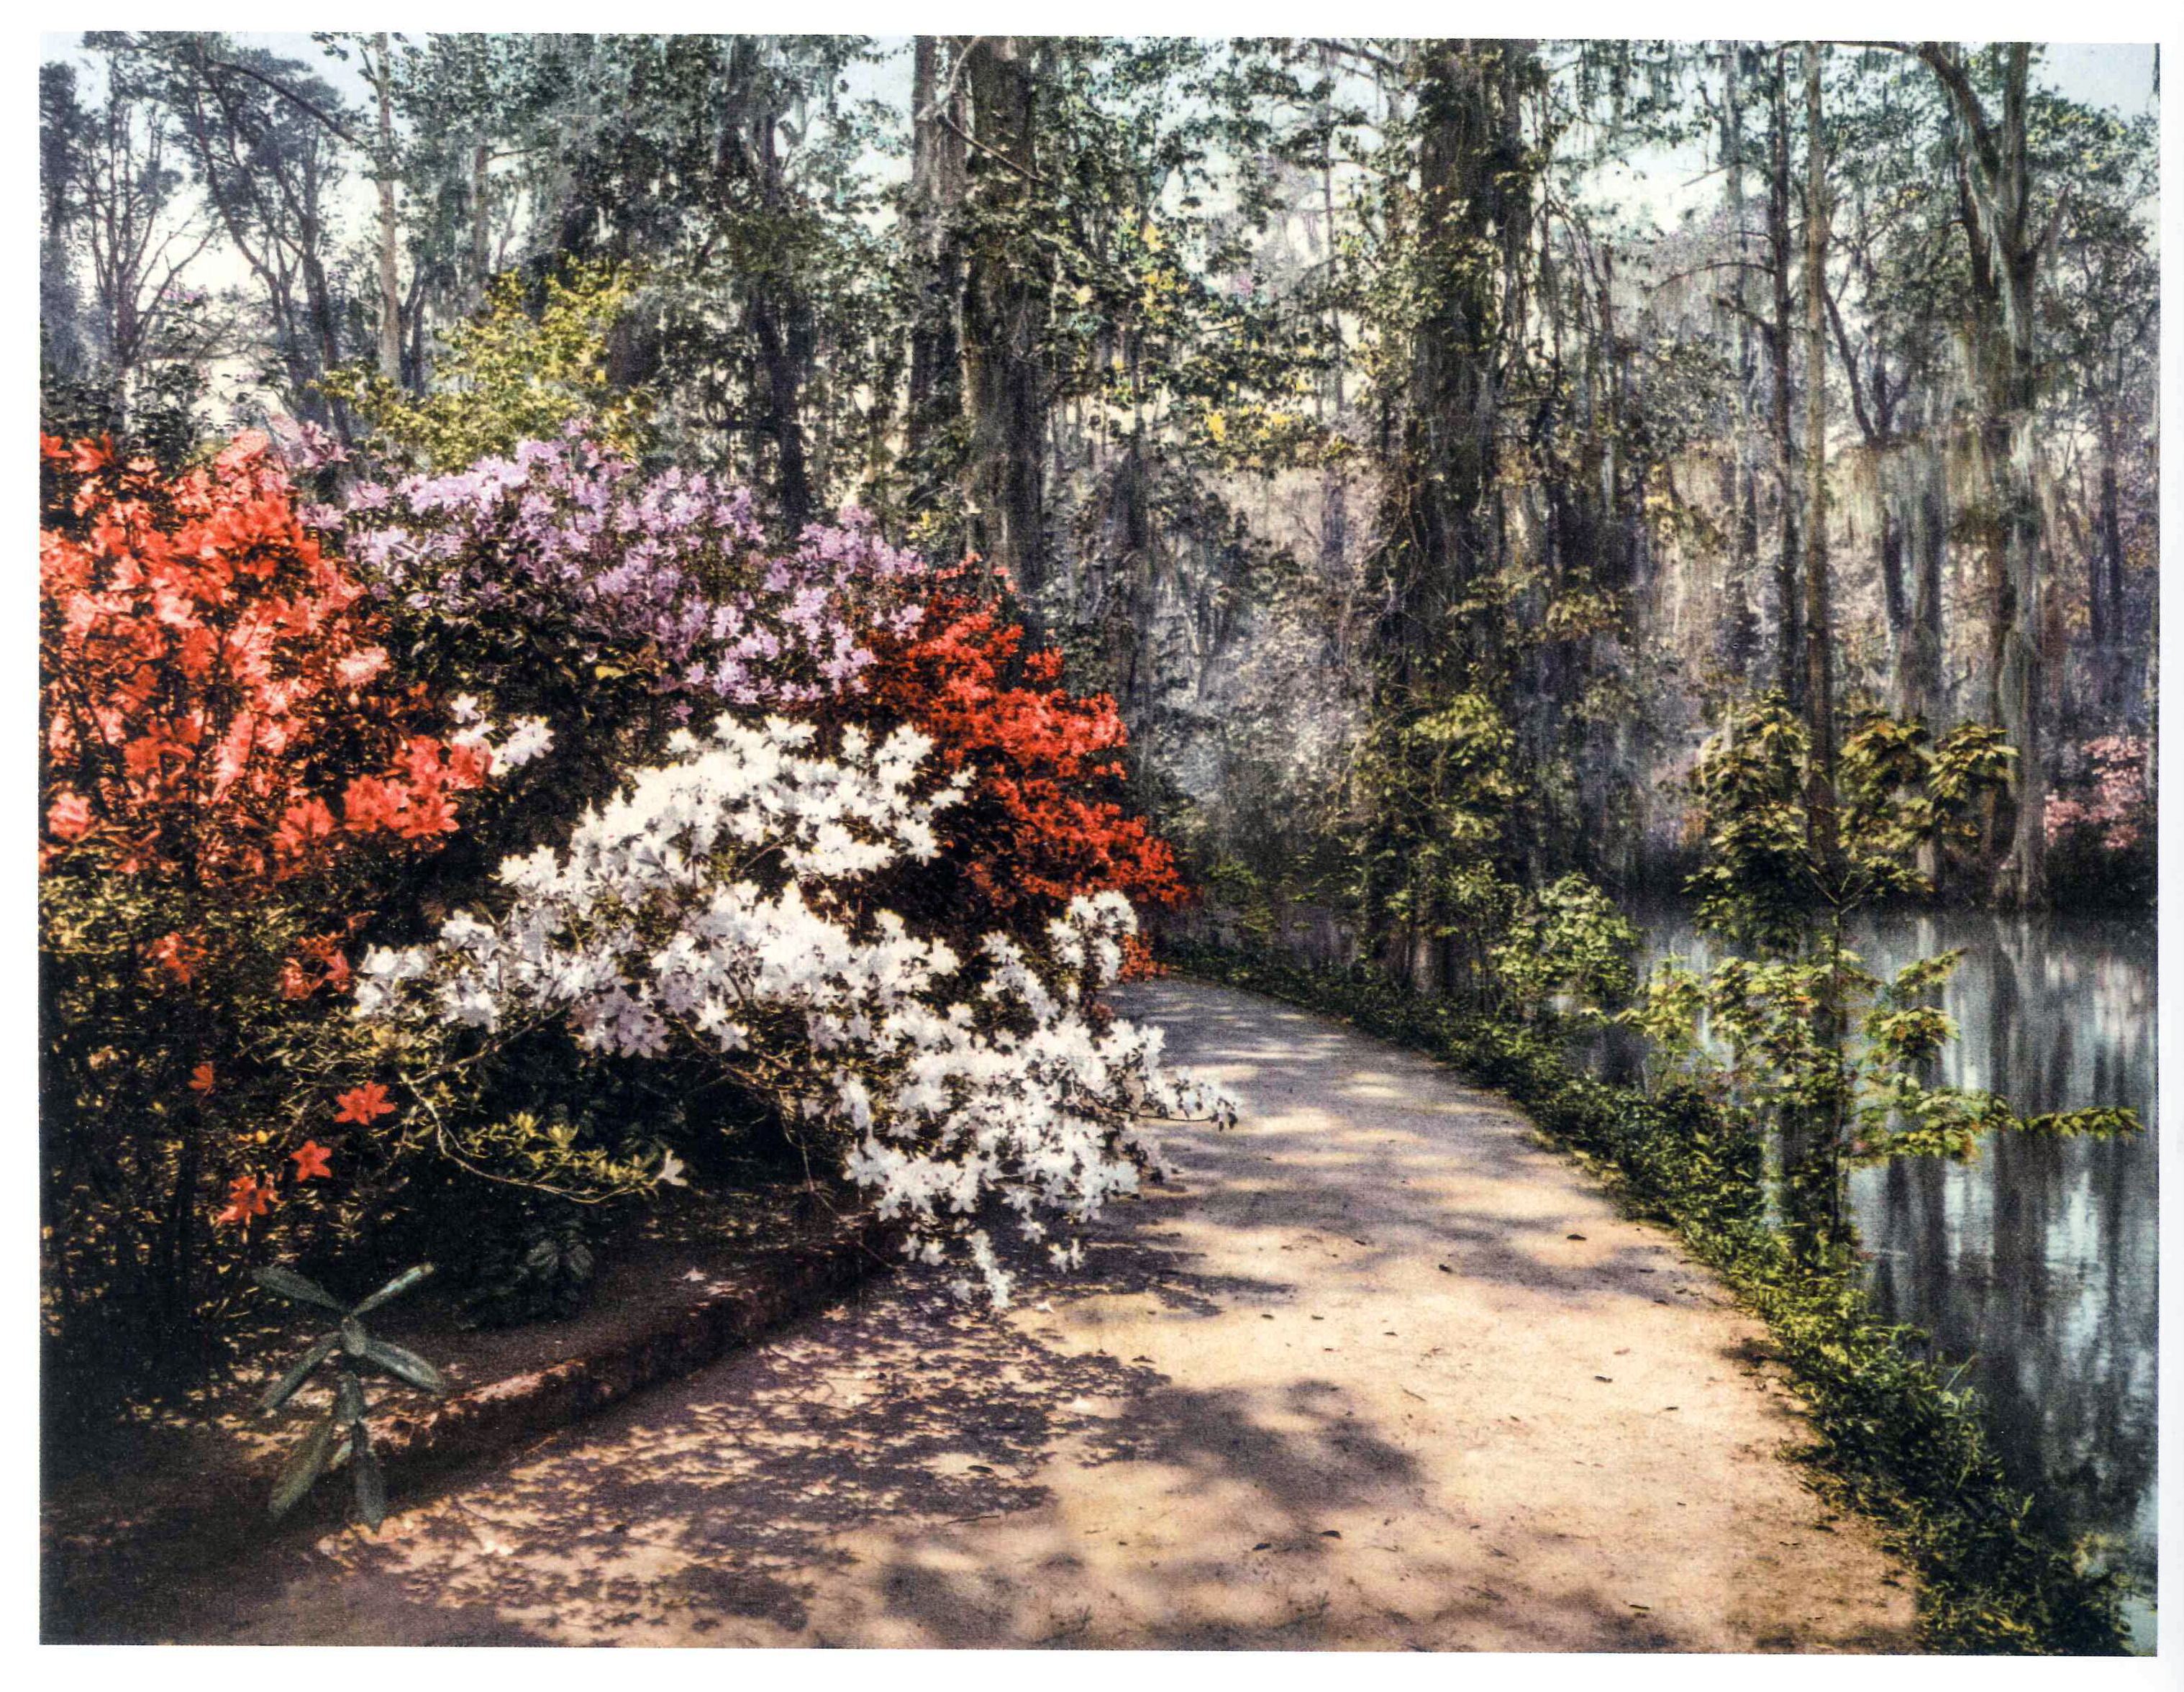 Gardens by the lake on the Magnolia Plantation, South Carolina (photochrom)